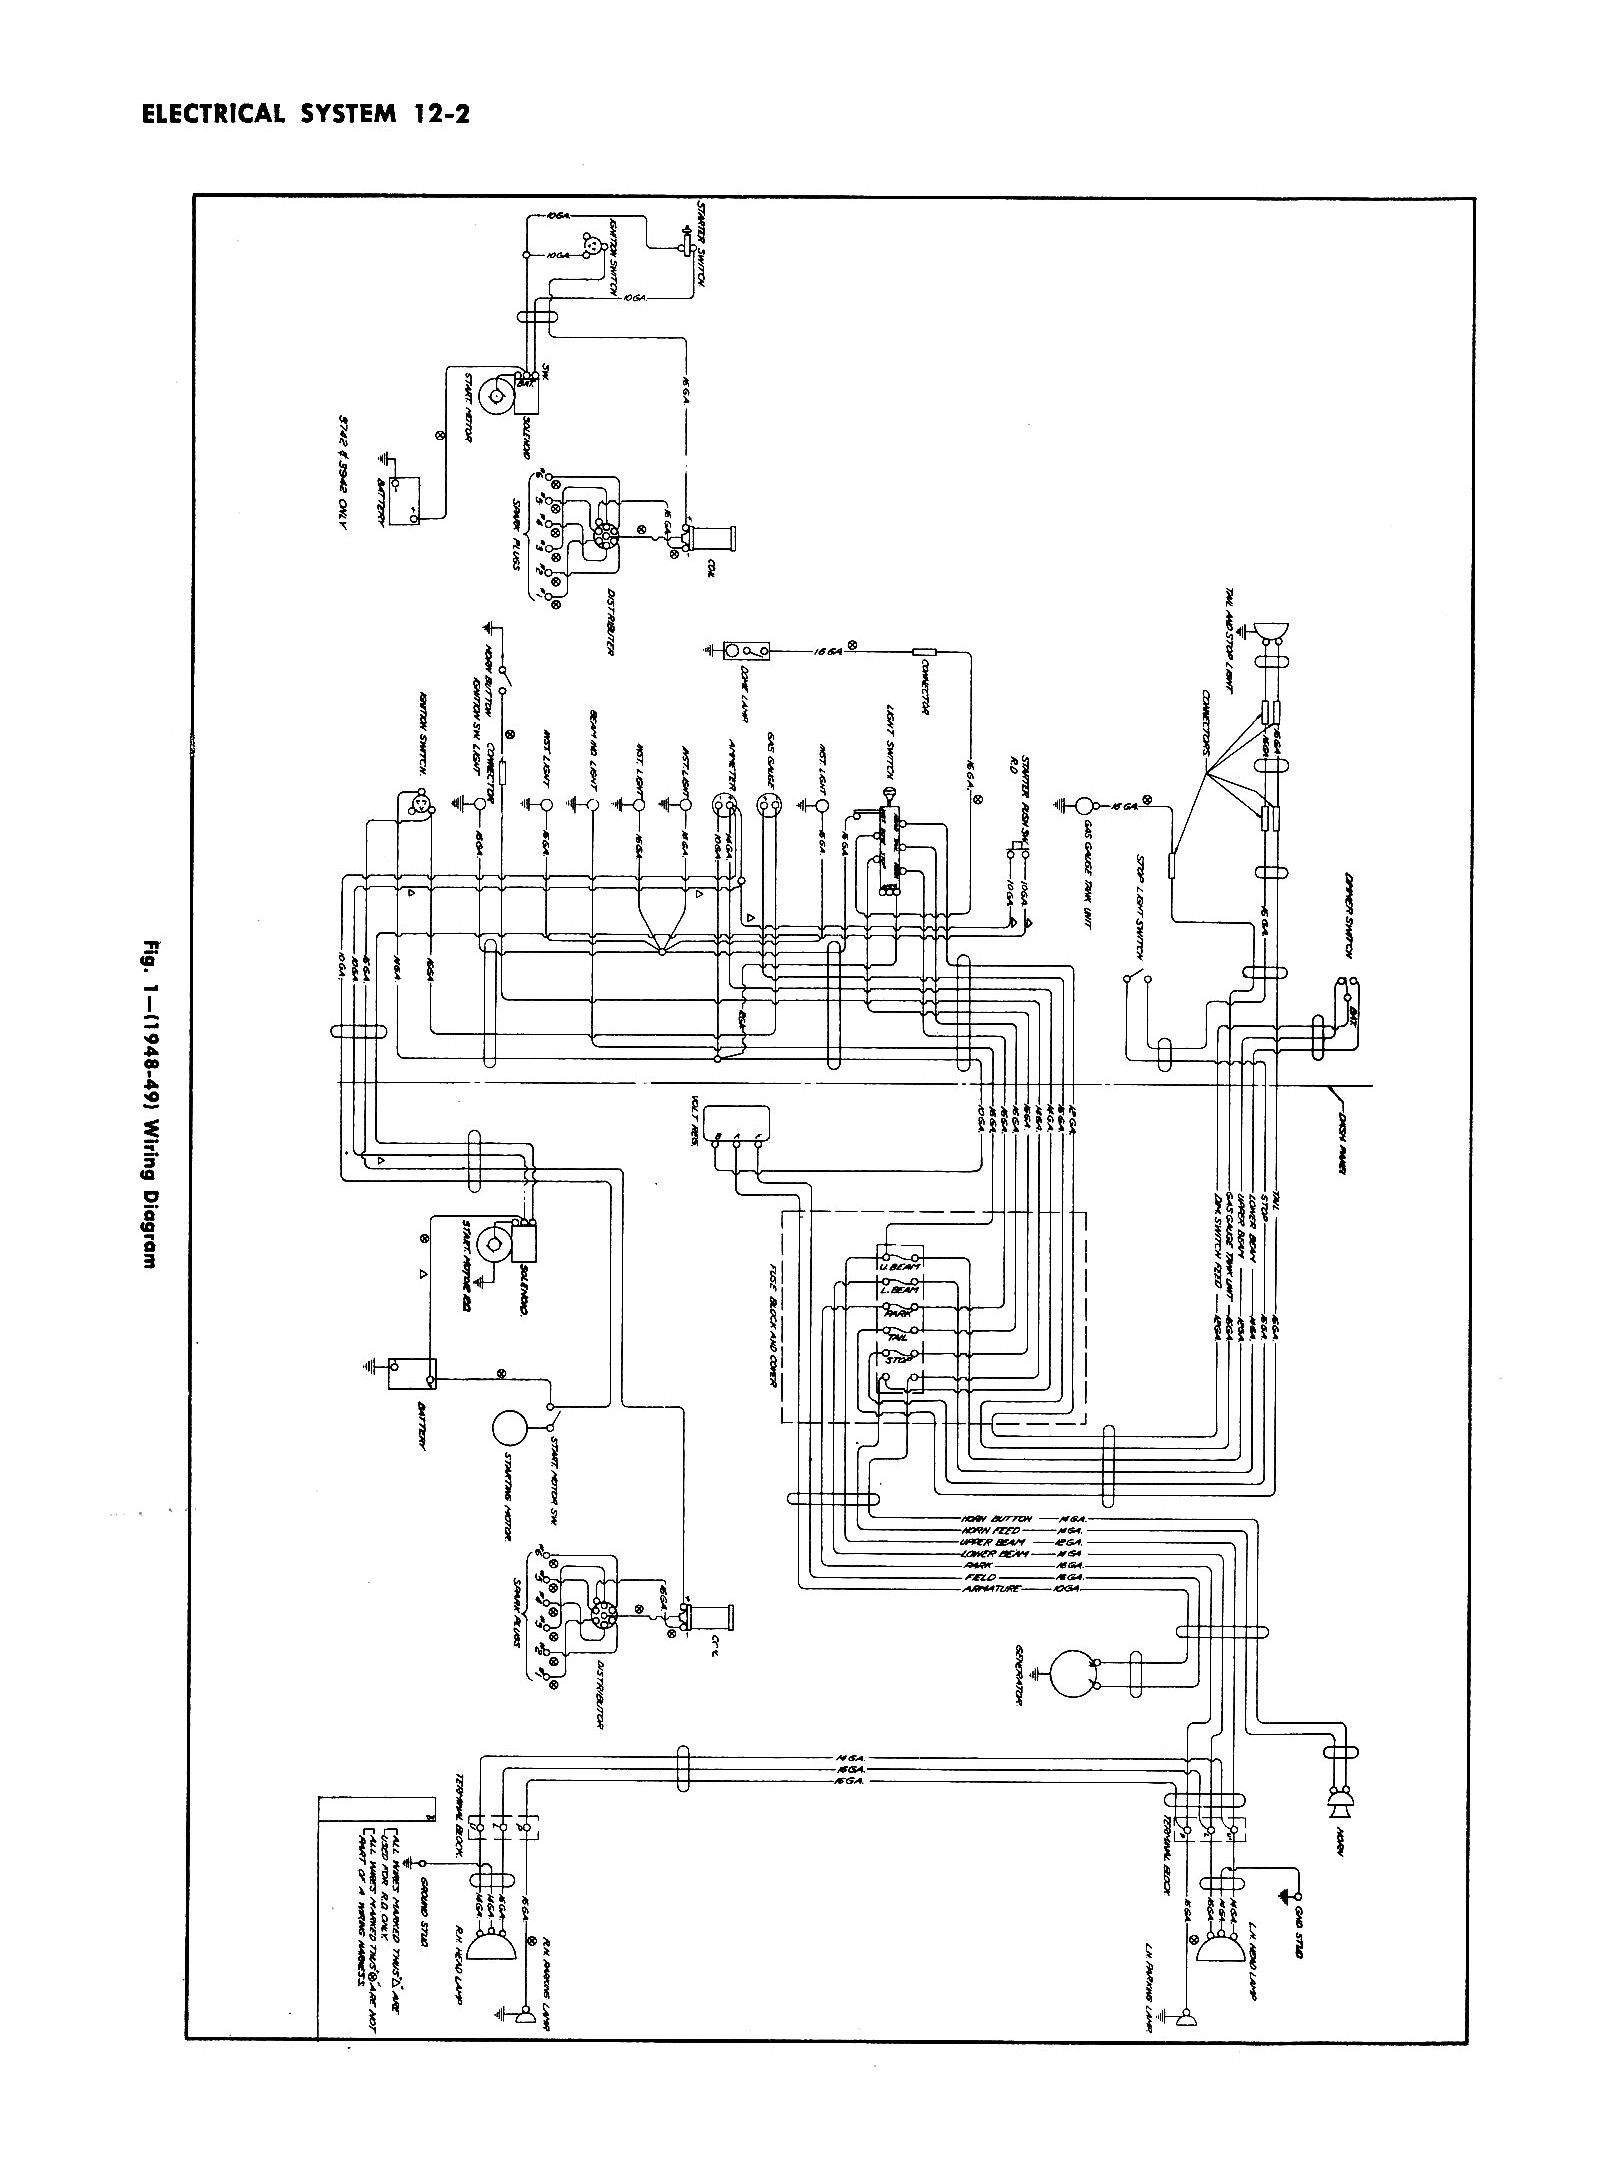 Chevy Wiring Diagrams 2004 Impala Power Window Diagram 1949 Truck